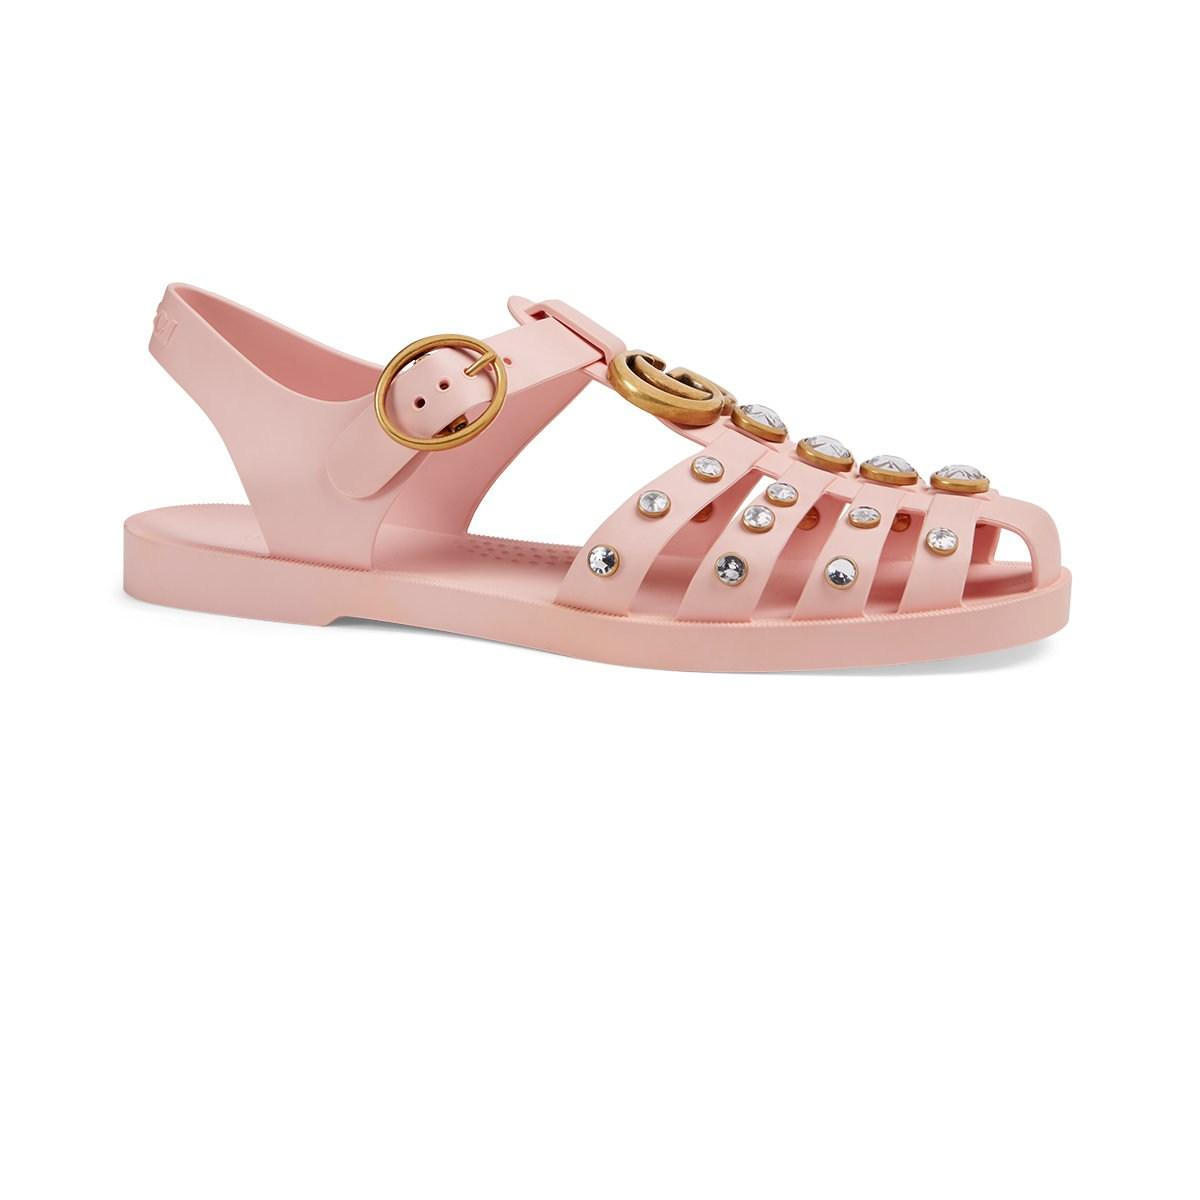 0a29dabc9bfc Gucci - Pink Crystal-embellished Rubber Sandals - Lyst. View fullscreen